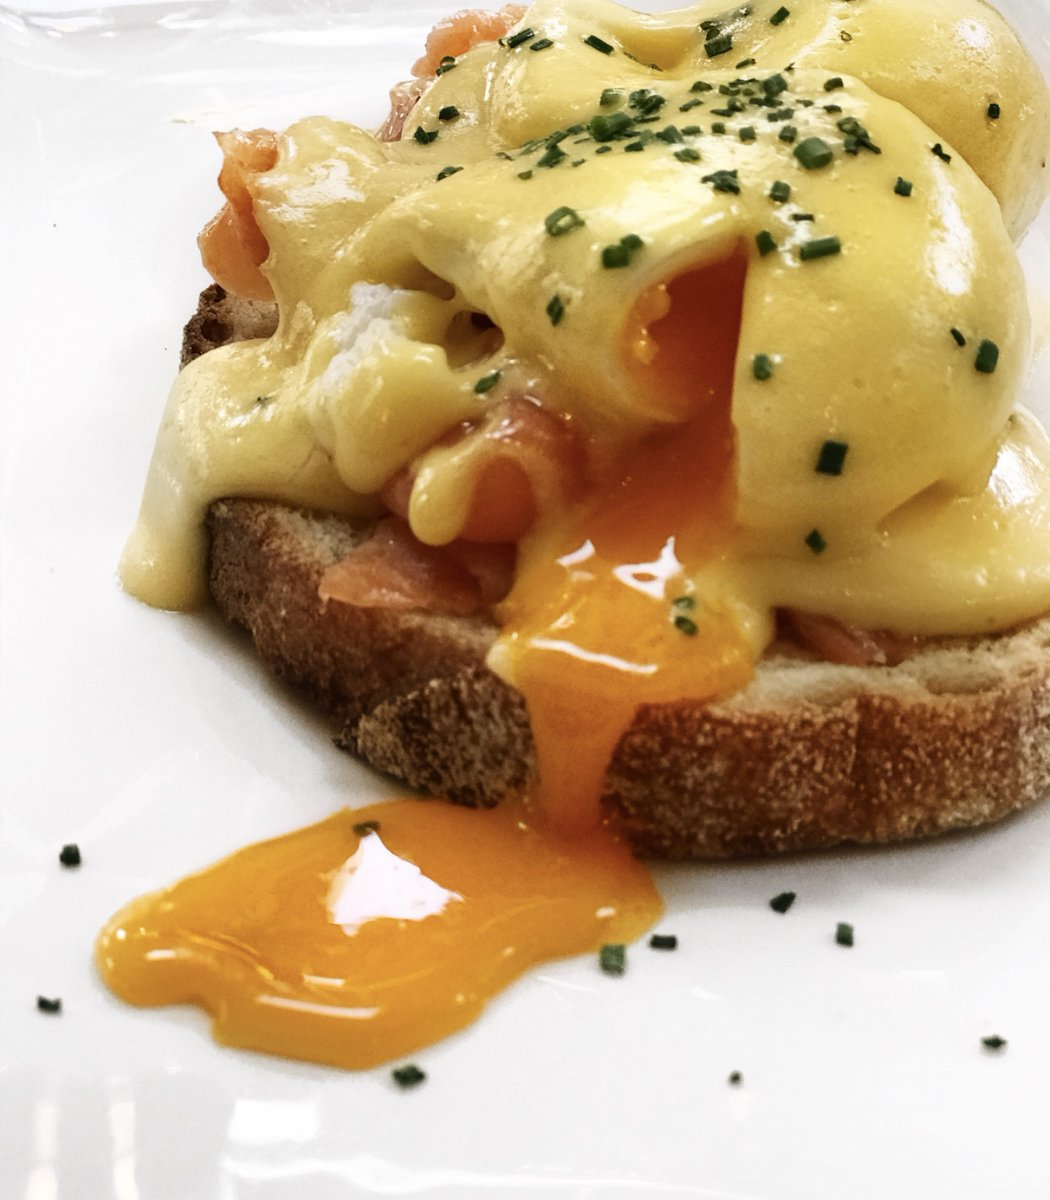 Con Club Restaurant On Twitter How Do You Like Your Eggs In The Morning Join Us For Breakfast From 10am Folks Altrincham